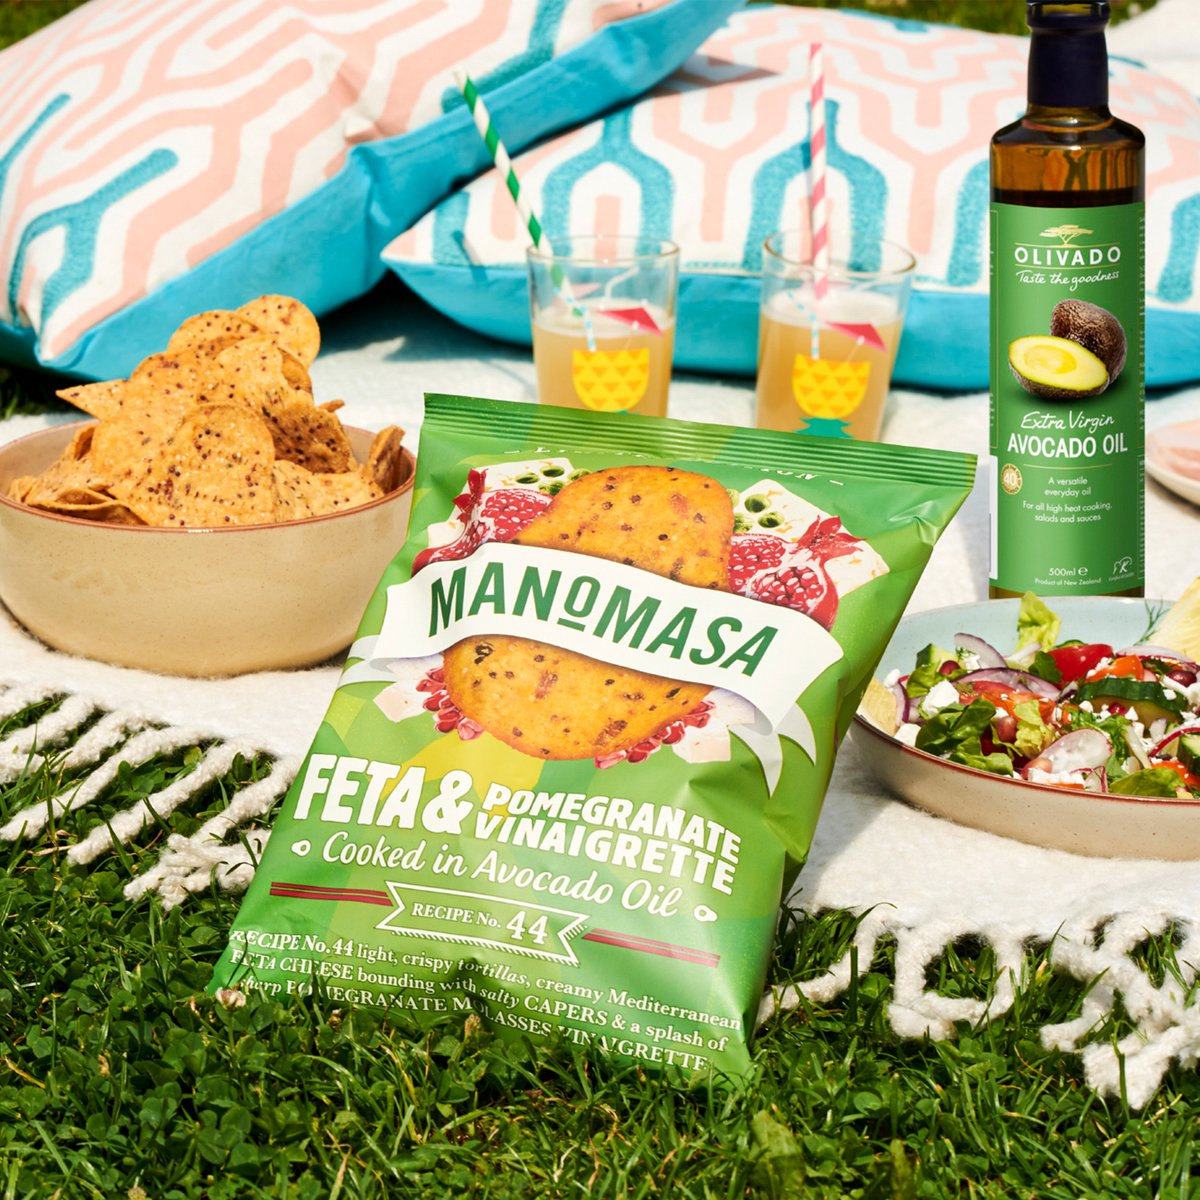 Whole foods uk on twitter vivalarevolucion the new limited whole foods uk on twitter vivalarevolucion the new limited edition feta pomegranate manomasa tortilla chips are in store now forumfinder Image collections